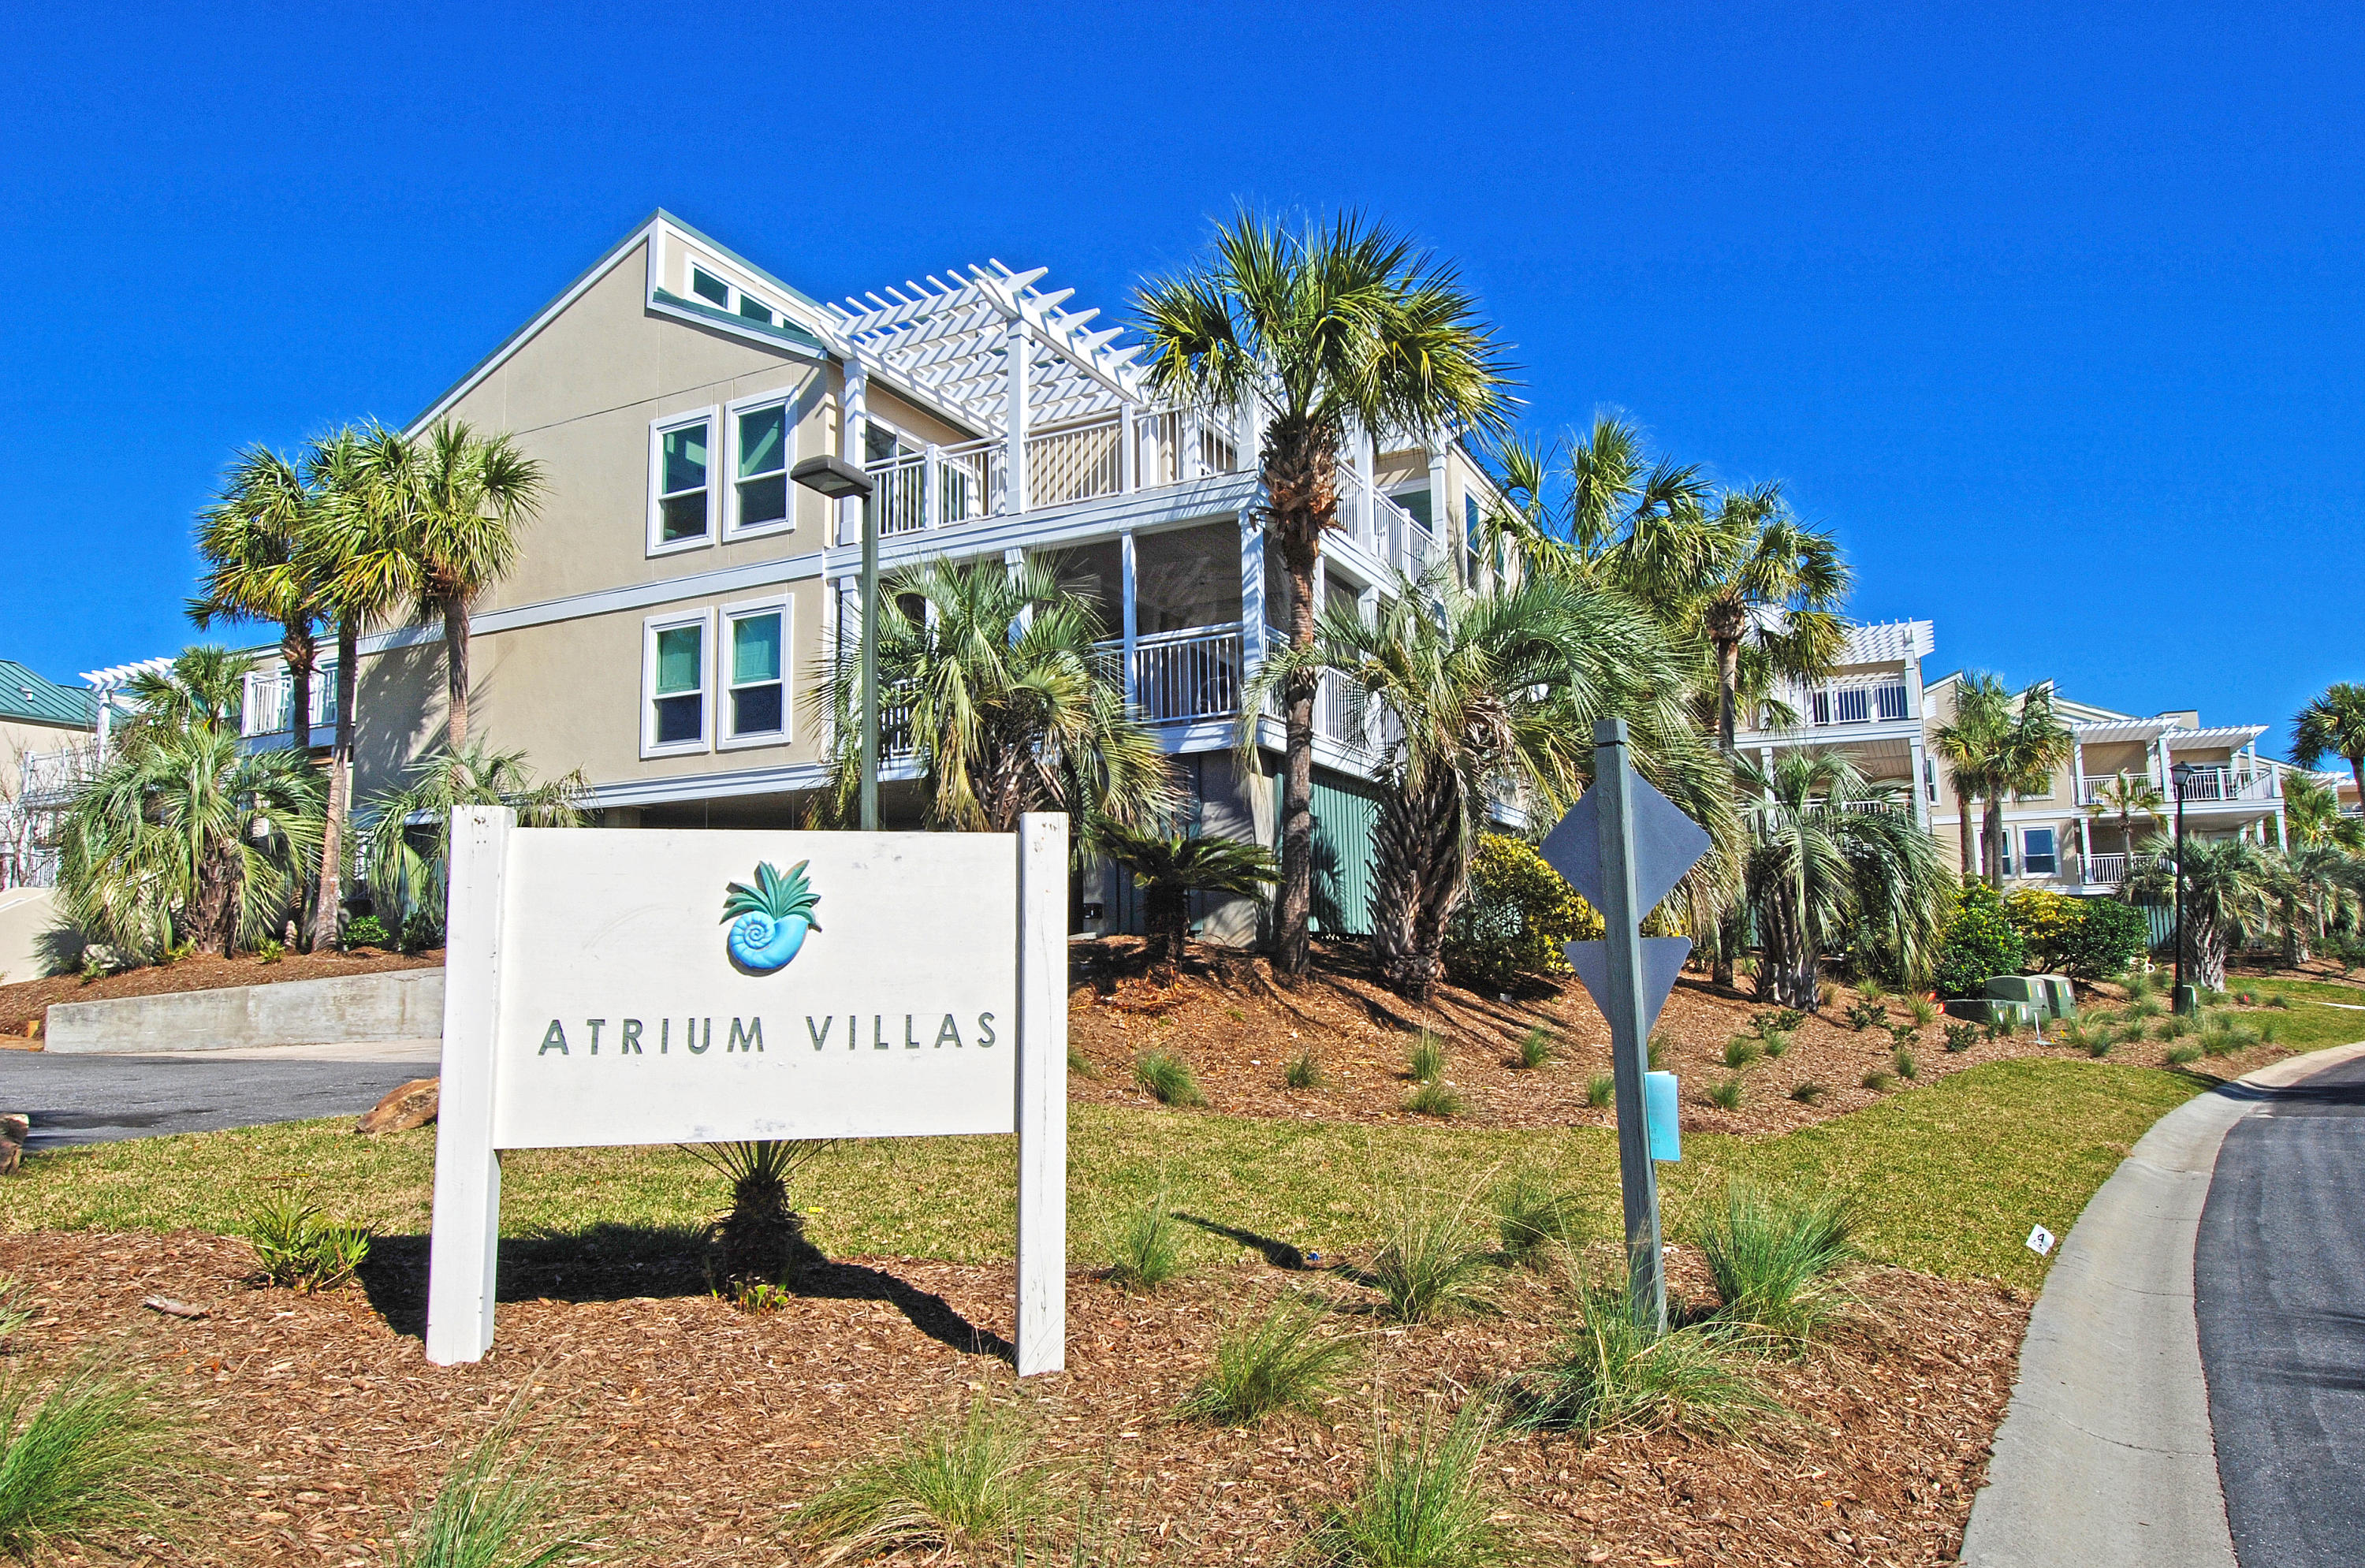 Atrium Villas Homes For Sale - 2943 Atrium Villa, Seabrook Island, SC - 2